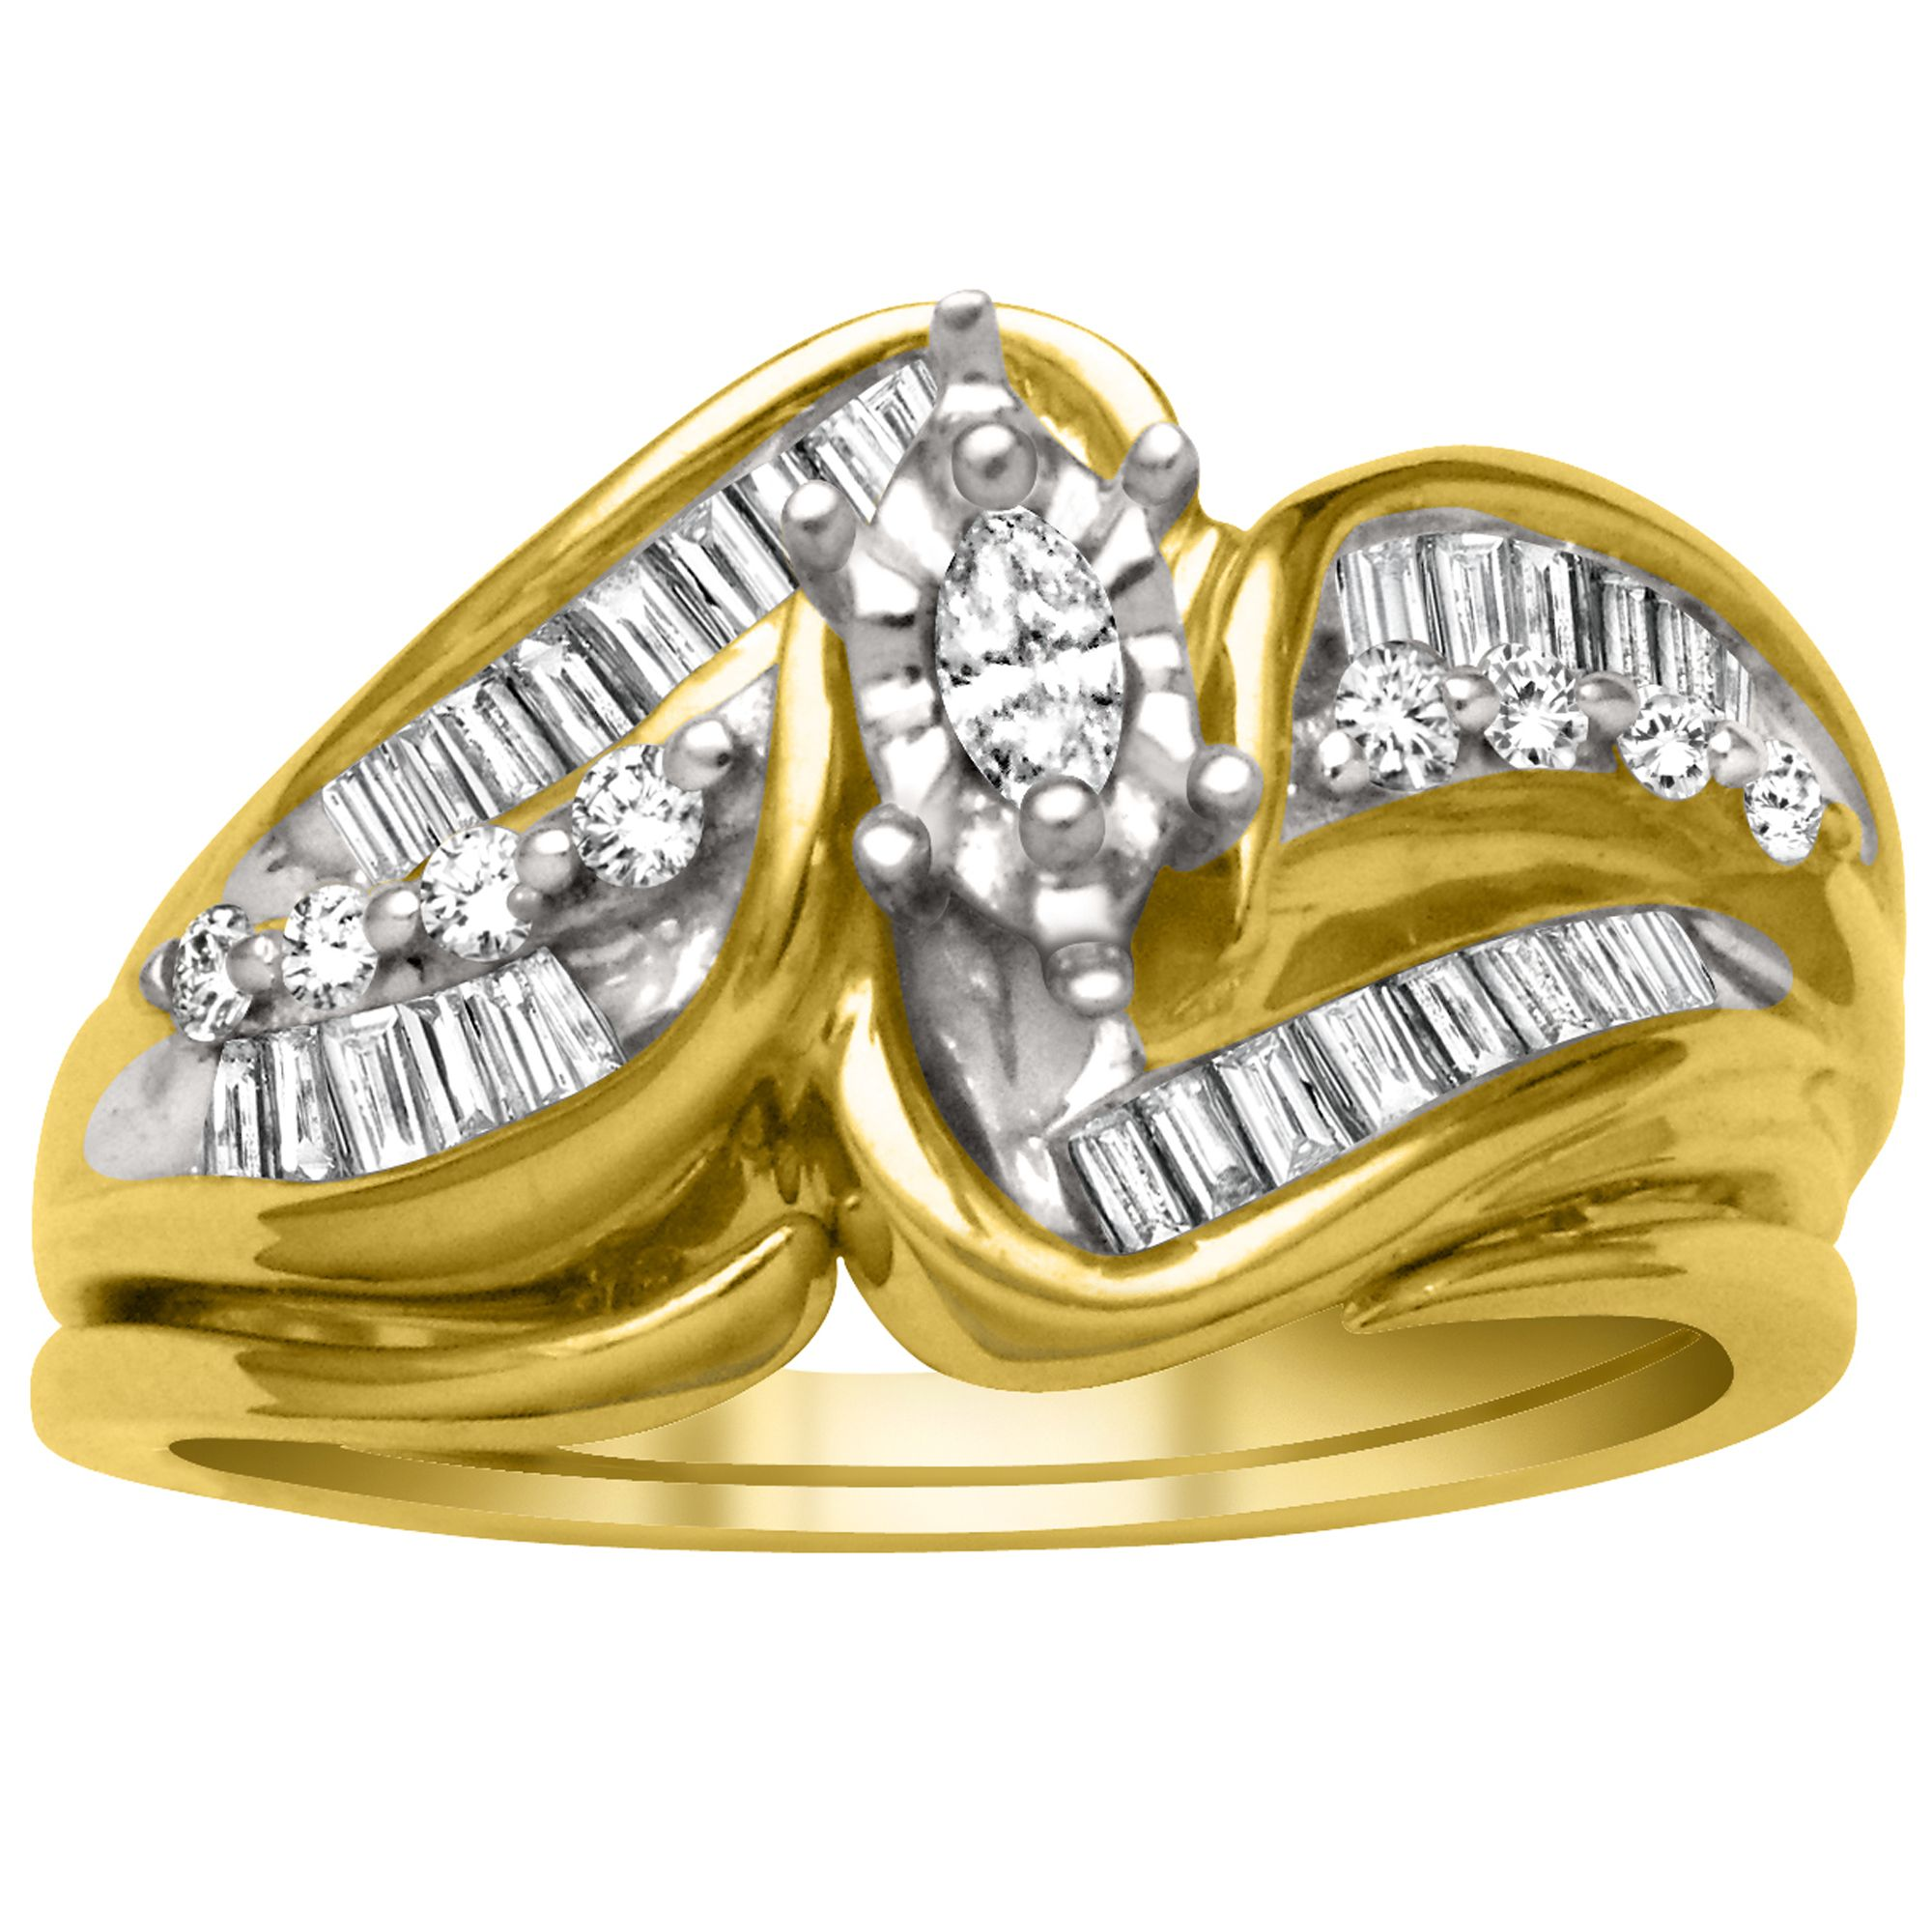 1/2cttw Diamond Ring in 10K Yellow Gold                                                                                          at mygofer.com